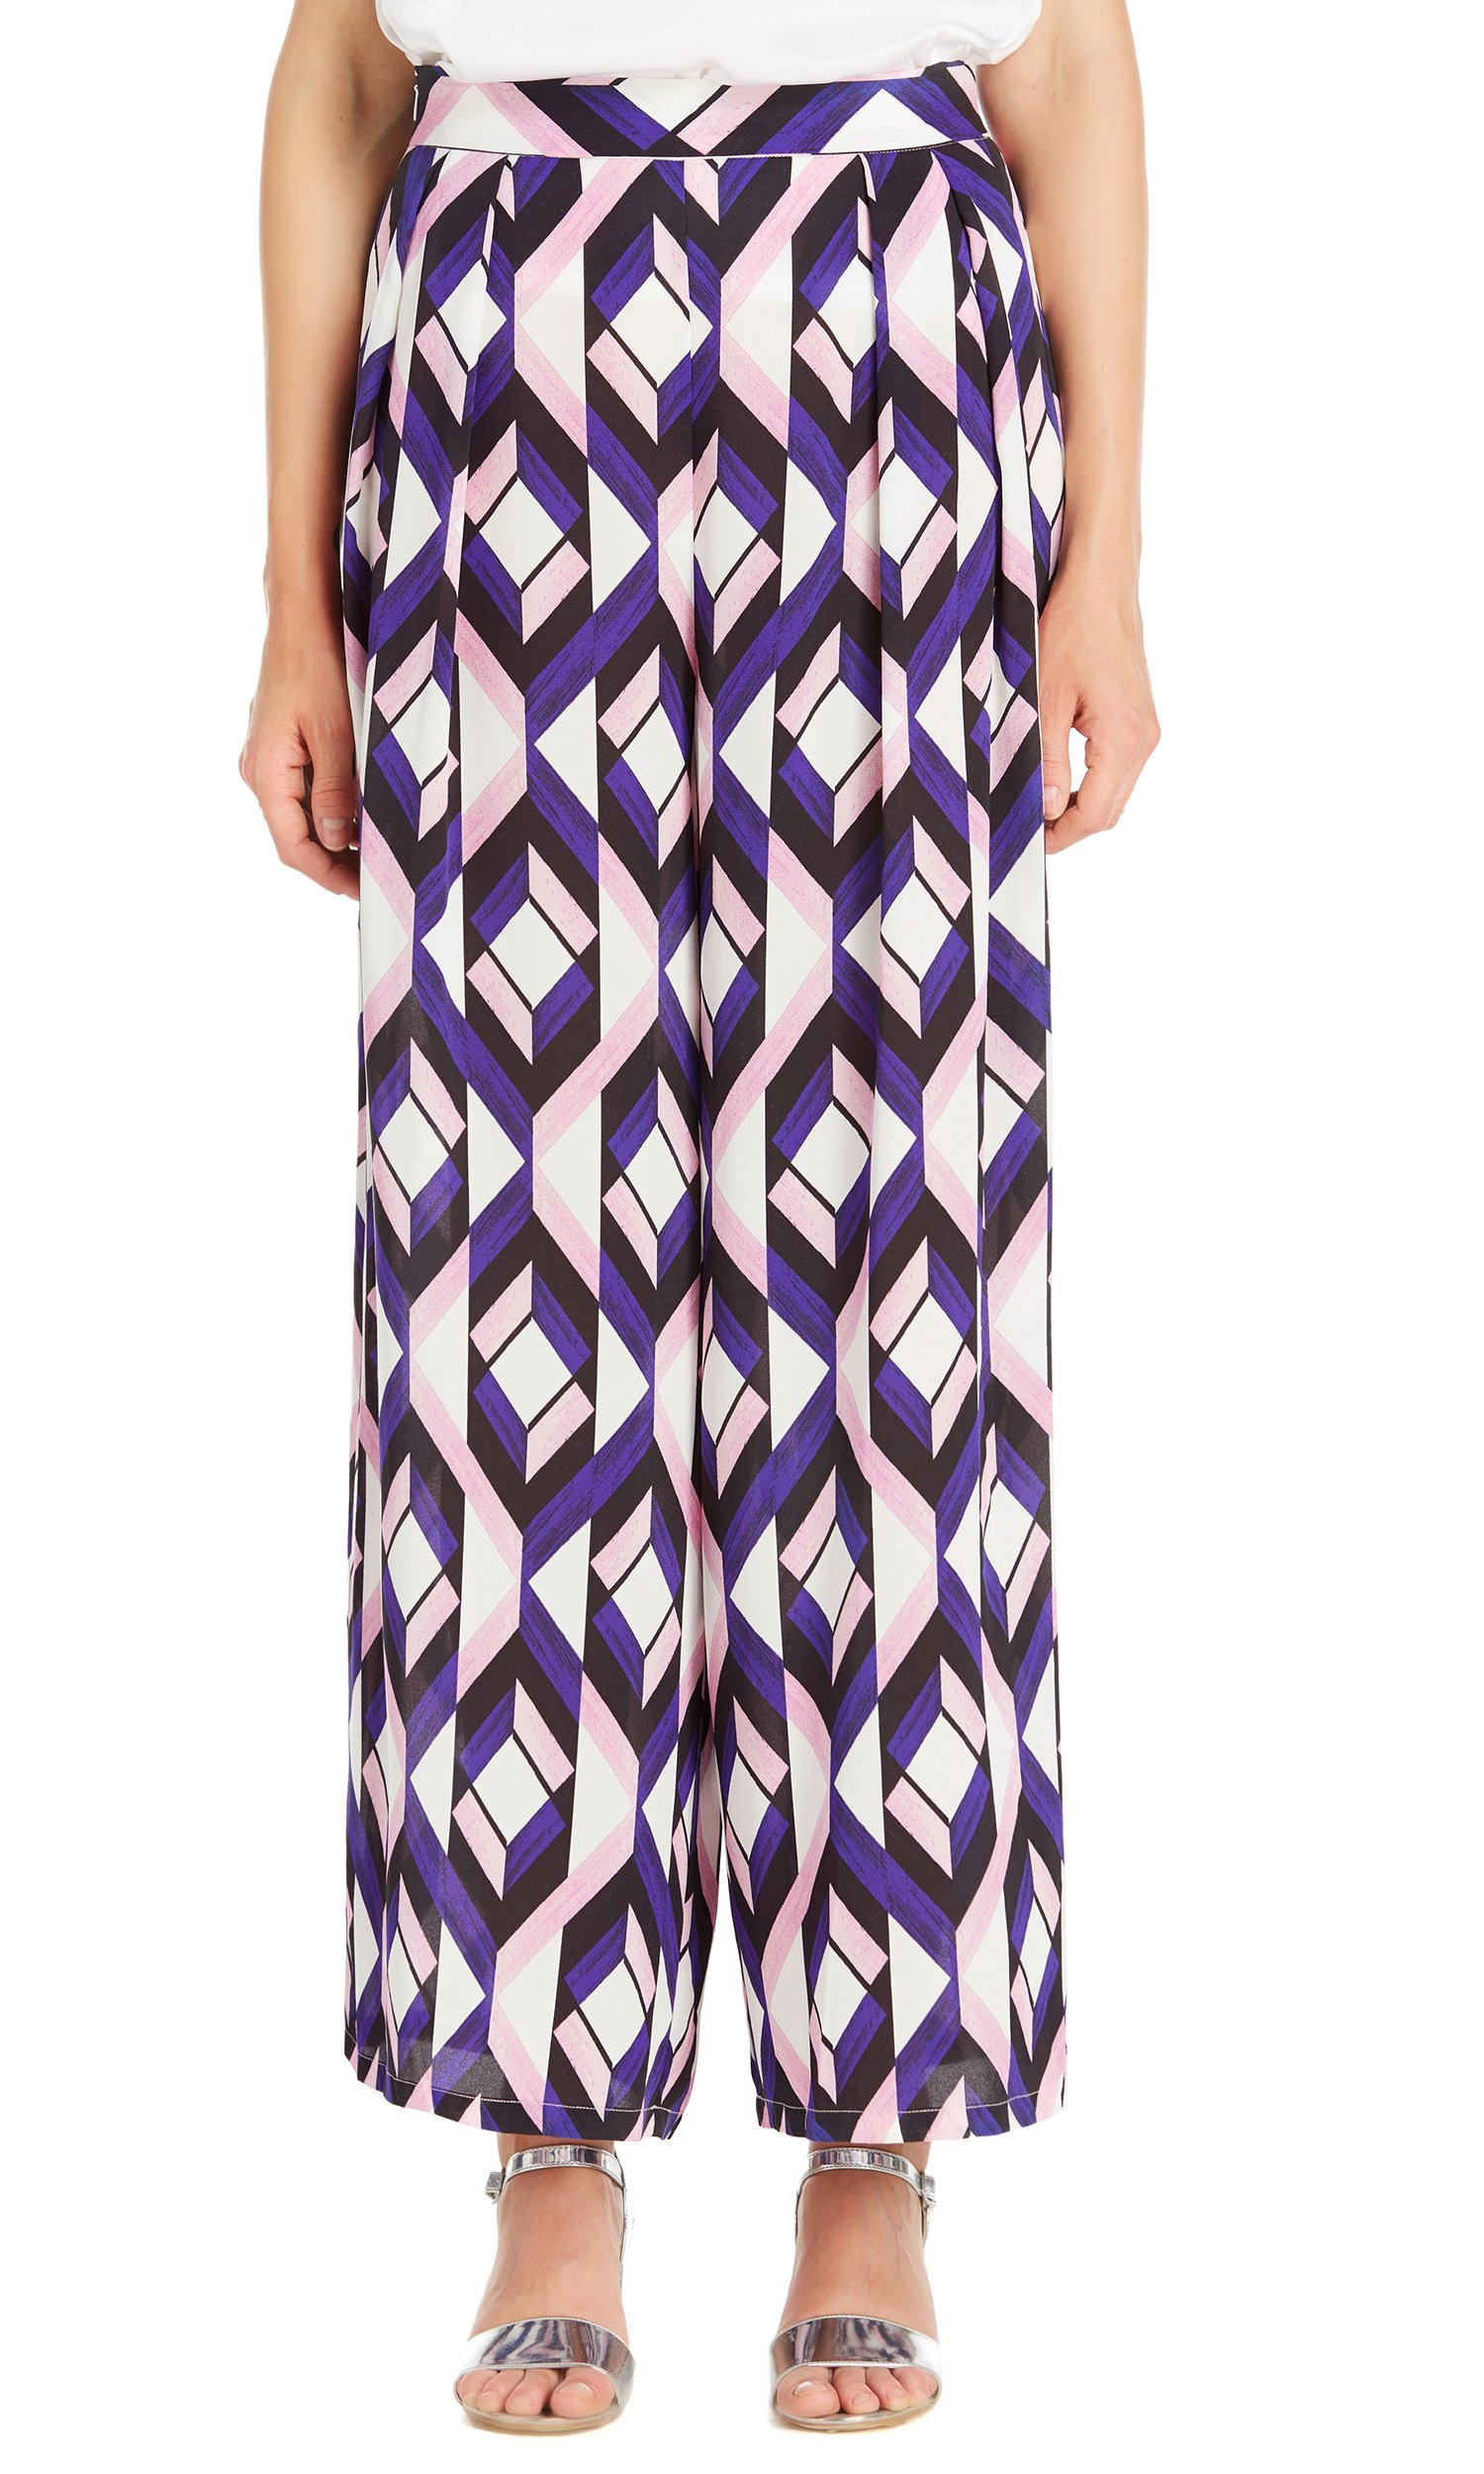 LILYSILK Women's 100 Pure Silk Trousers Wide Leg 19MM Geo Print for Ladies Designer Fashion Summer Geo Print Purple XXL/18-20